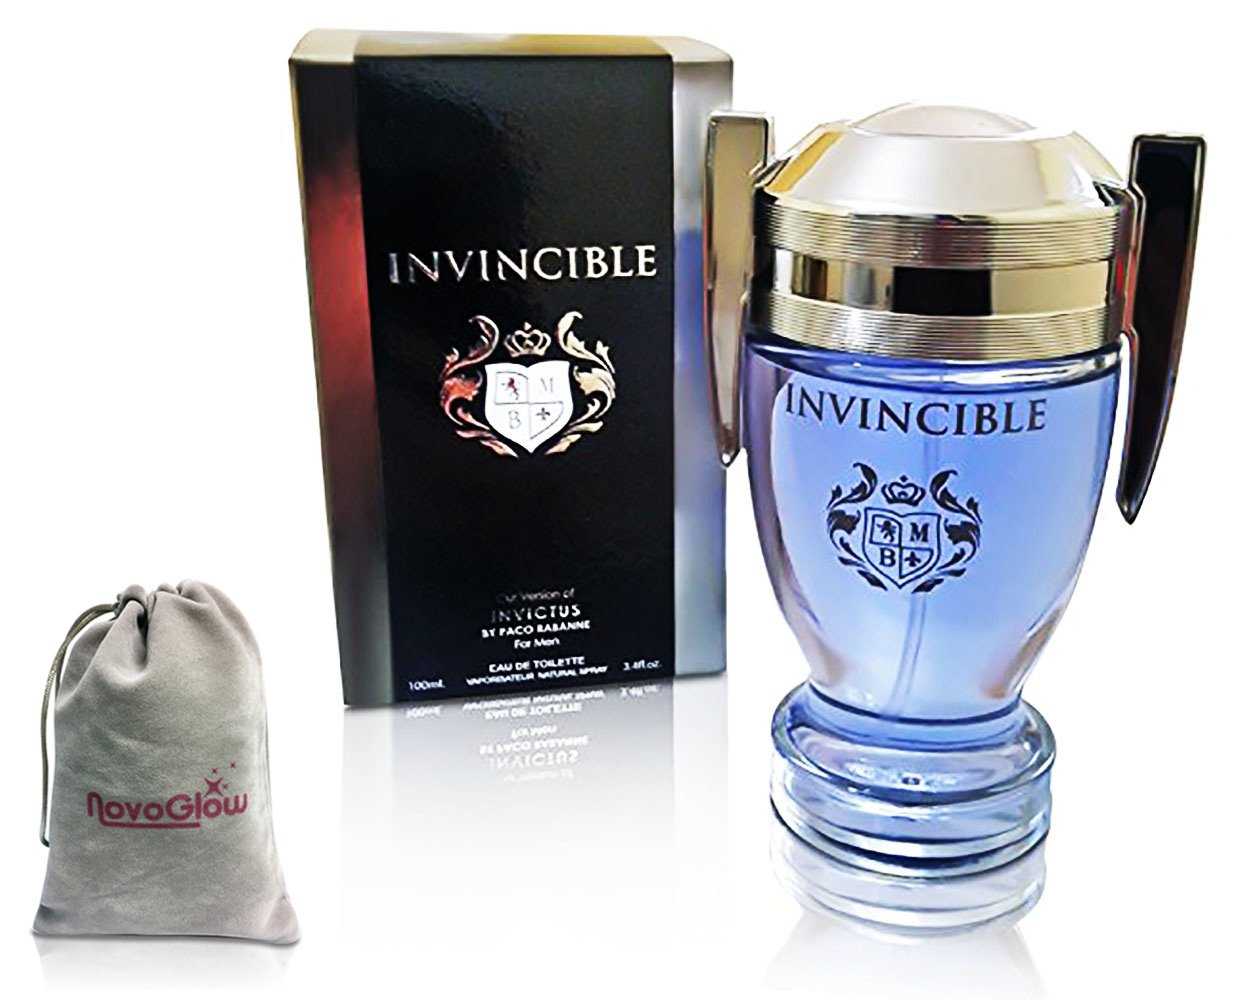 Invincible Perfume Eau De Toilette, Impression by Mirage Brands, 3.4 fl oz 100 ml - Long-Lasting Fragrance To Rock Every Occasion with a NovoGlow ...